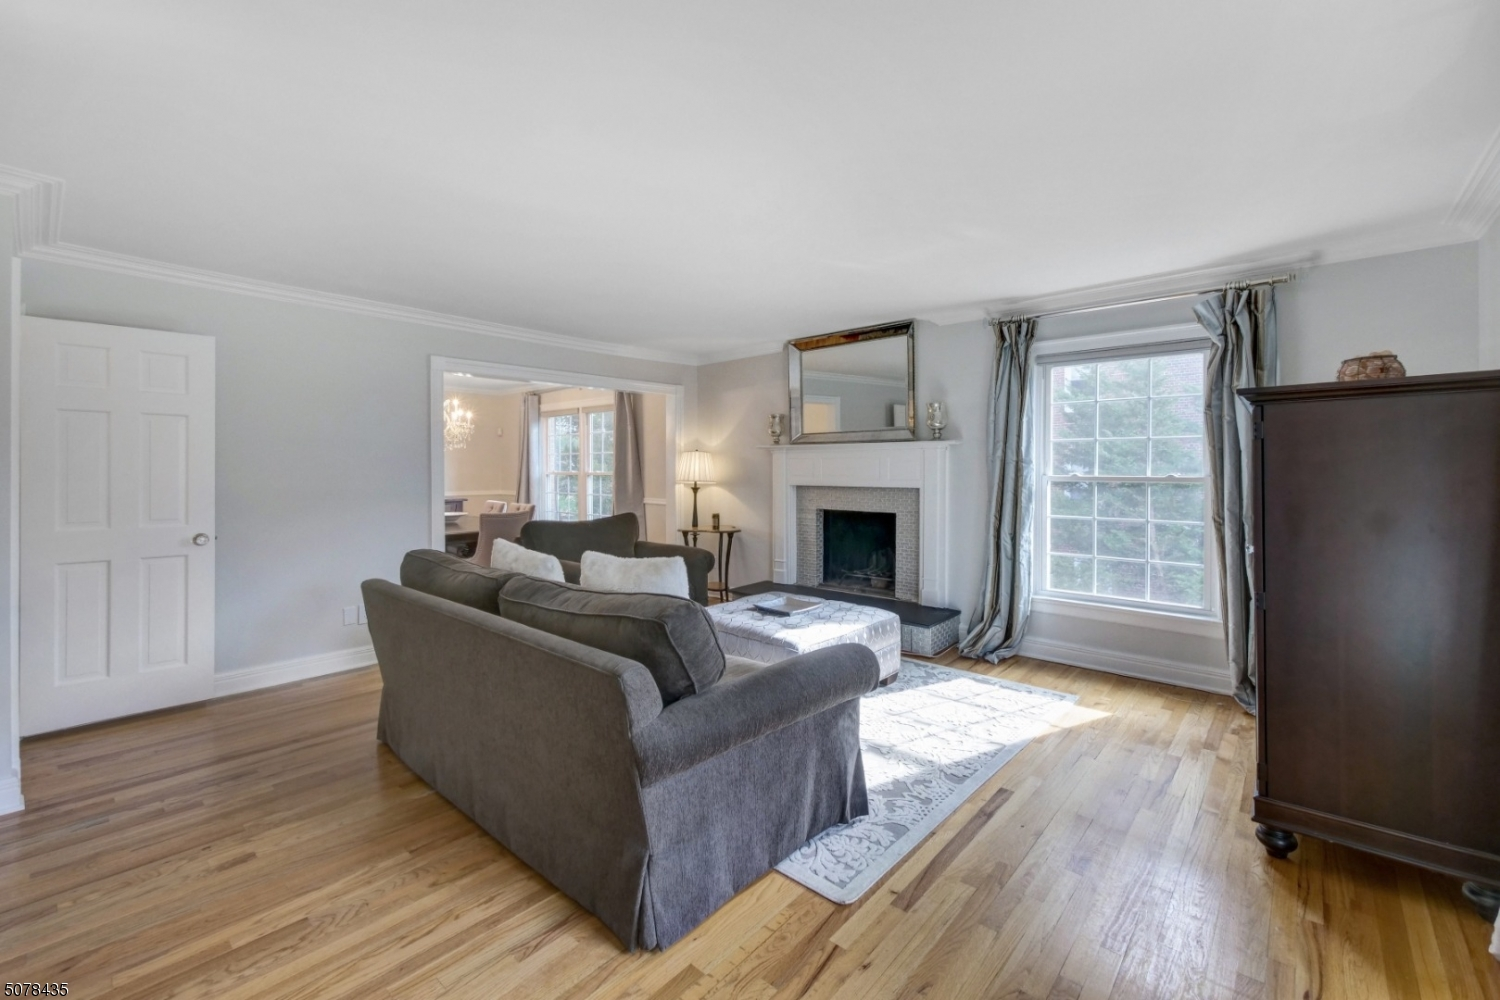 Hop on a train and you will find yourself in NYC in just 42 minutes! This luxury townhome 3BDs/ 2.5BA has it all and is just blocks from Downtown Cranford! Top of the line upgrades on every floor, private balcony, woodburning fireplace, 2 car attached garage! Spacious & bright living & dining rooms. Updated kitchen w/private balcony! Spacious bedrooms, 2nd fl washer &dryer, upscale bathrooms. Finished lower level has high ceilings & loads of storage. 2-car attached garage, great outdoor space w/beautifully landscaped common areas. Steps from all that Cranford has to offer! The Star-Ledger named Cranford the best downtown in NJ. Cranford Train station just a few blocks away.